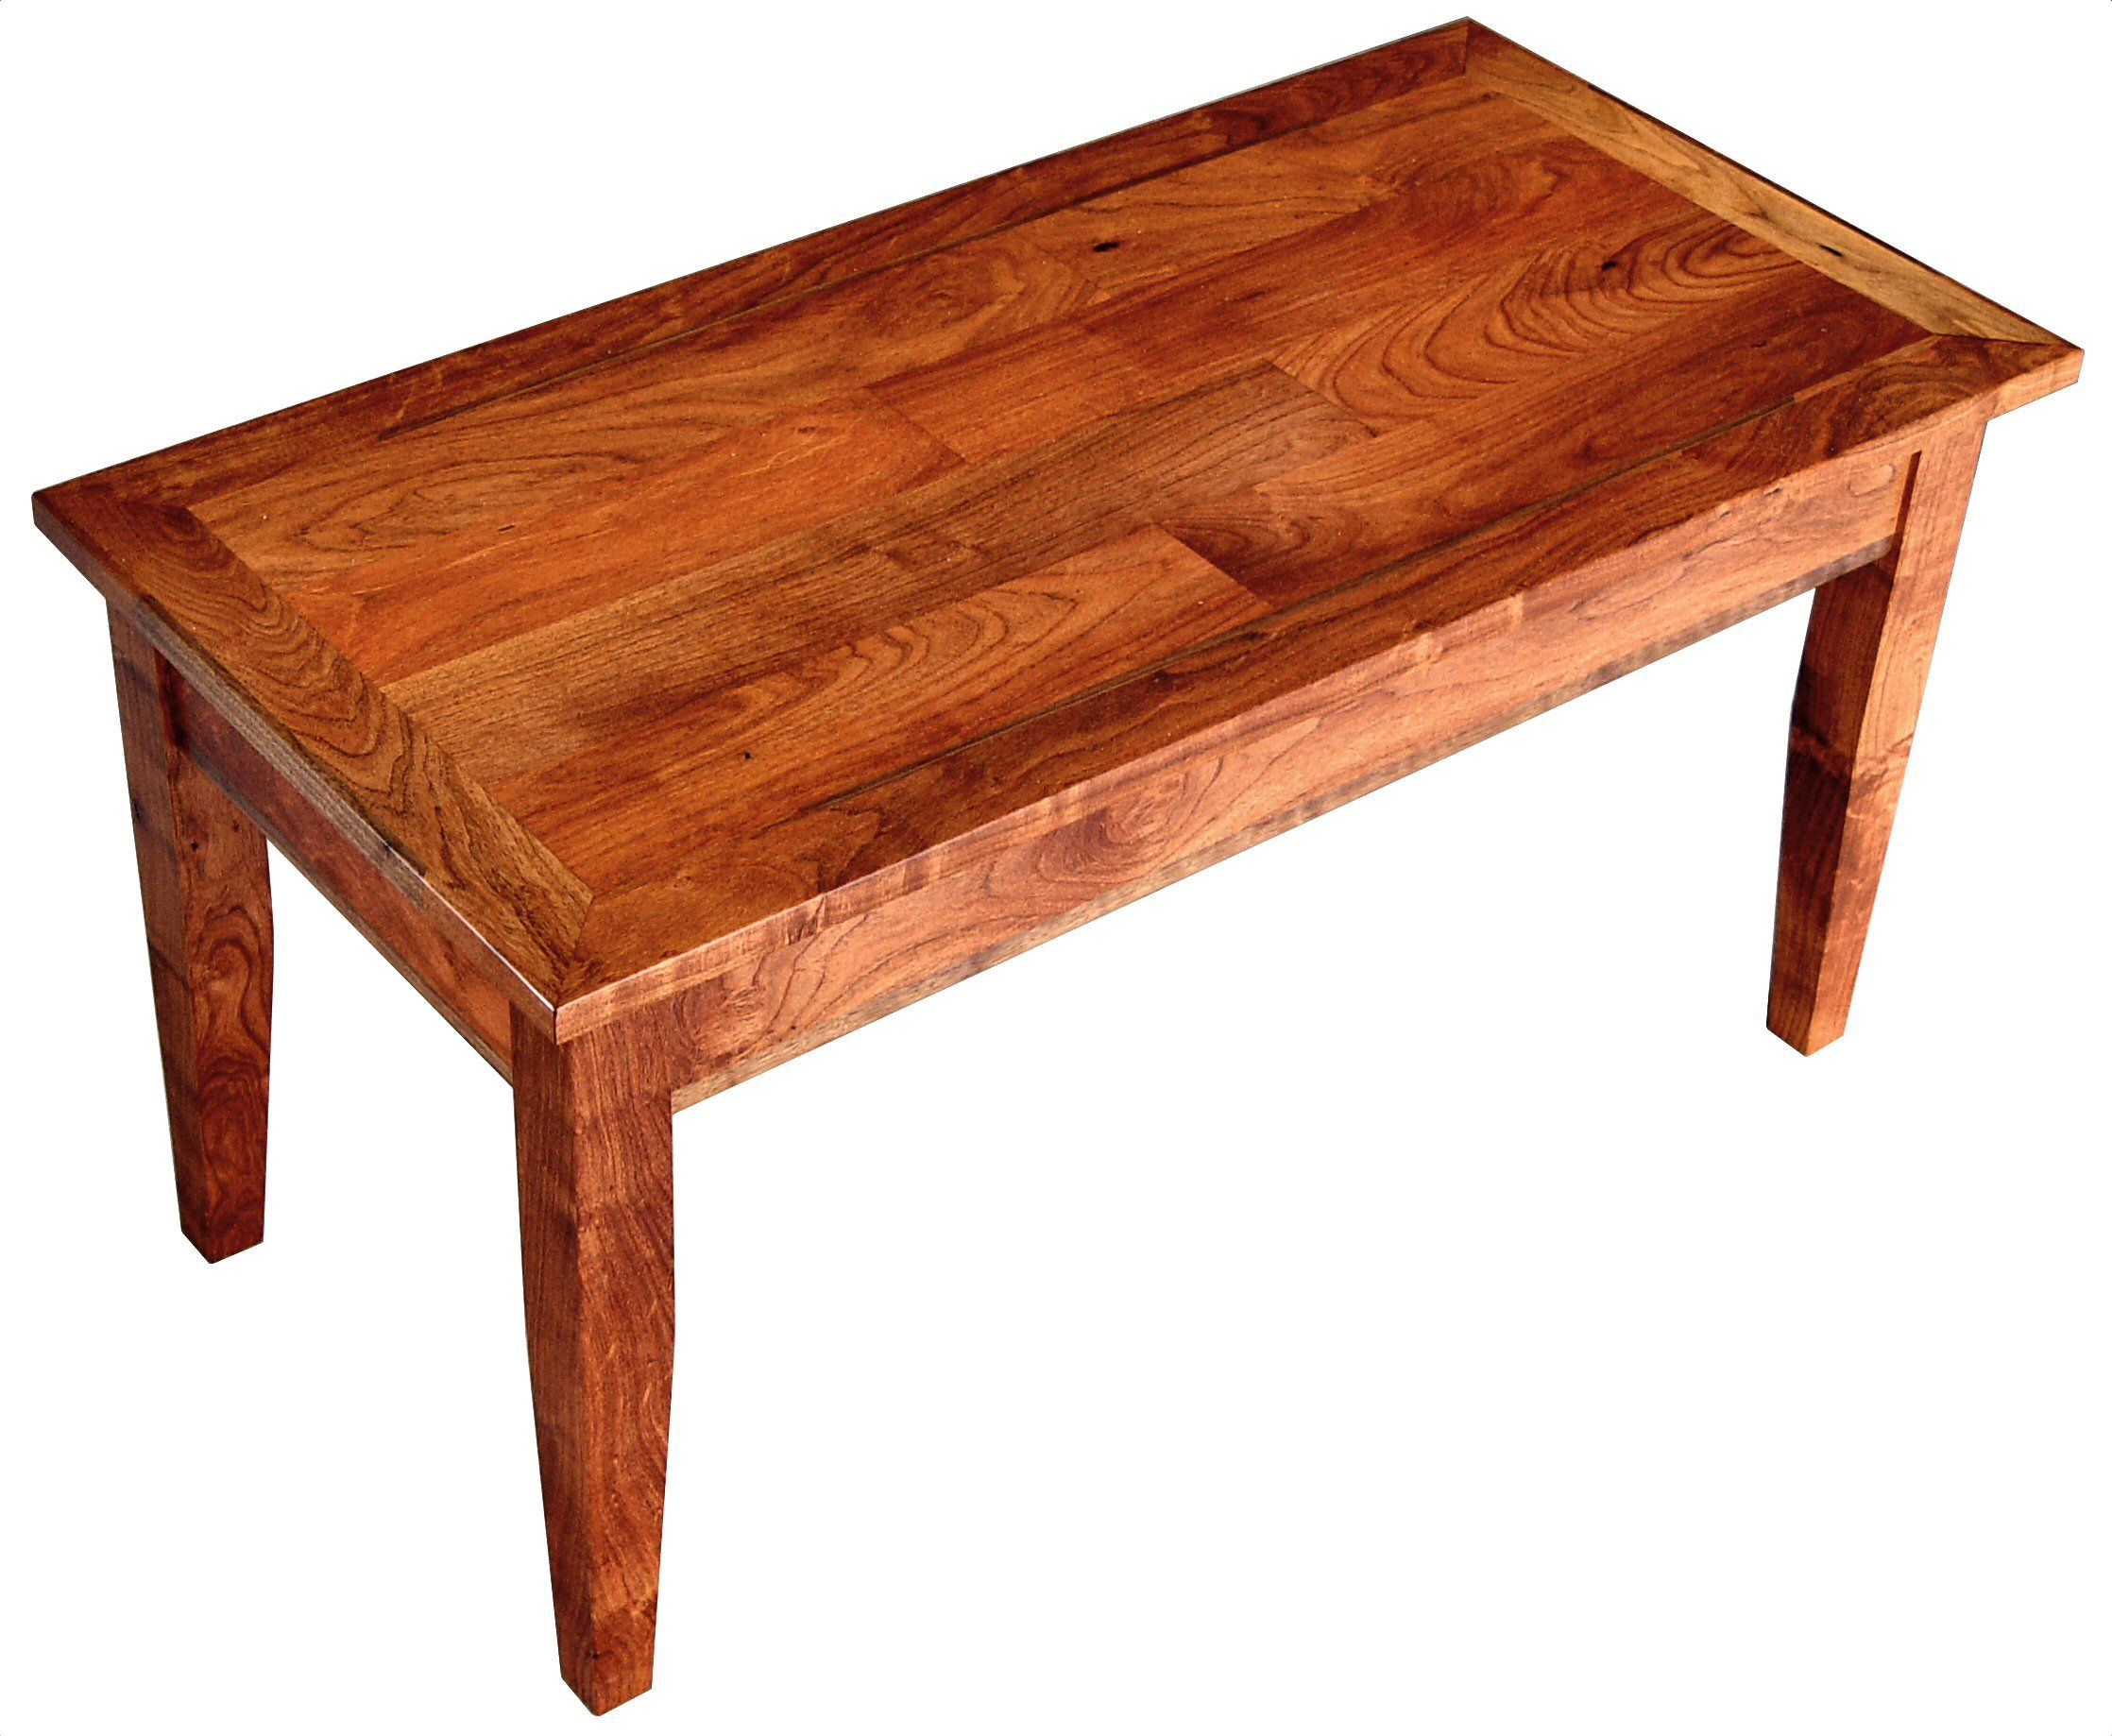 Face Grain Shaker Style Coffee Table With Randomly Jointed Boards In A